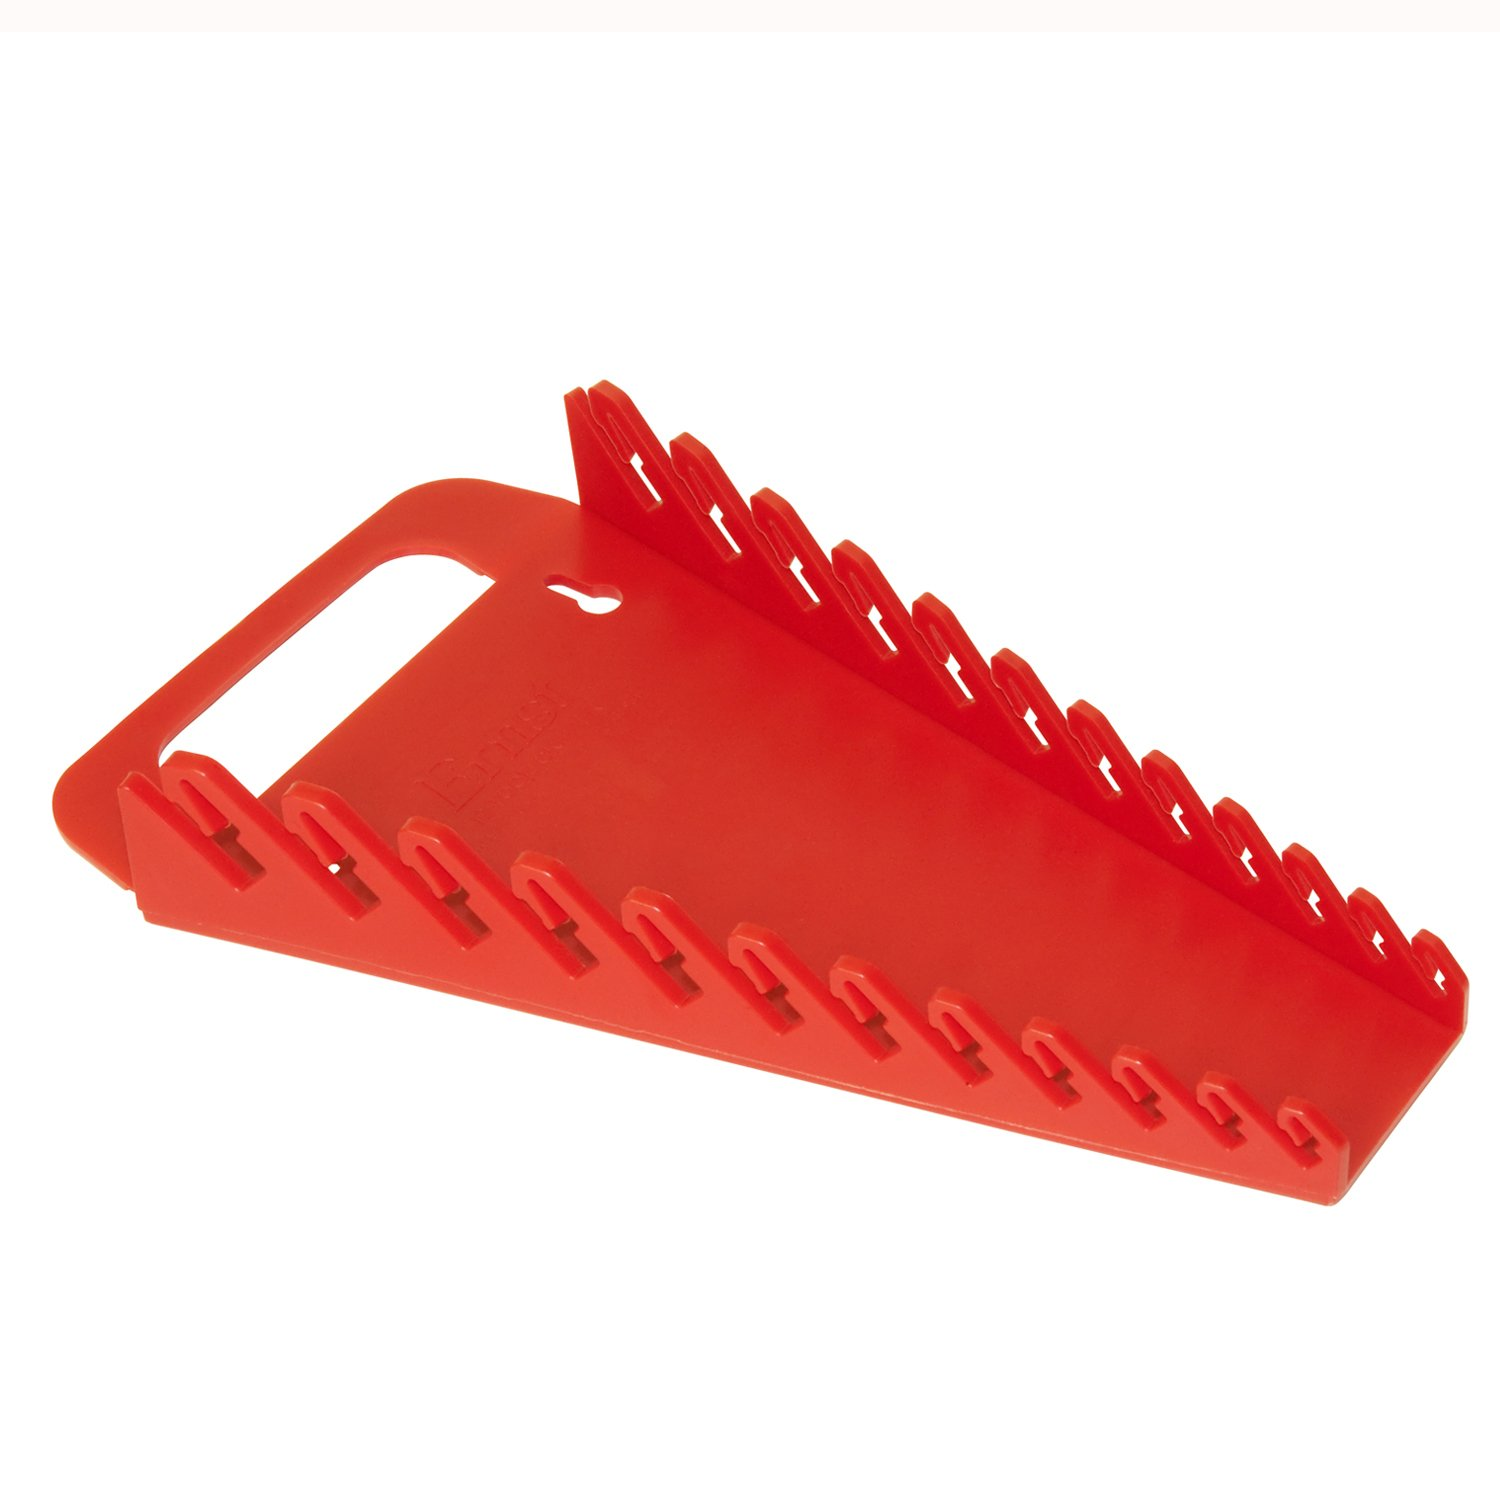 15 Tool Ernst Manufacturing 5082HV Gripper Wrench Organizer High-Visibility